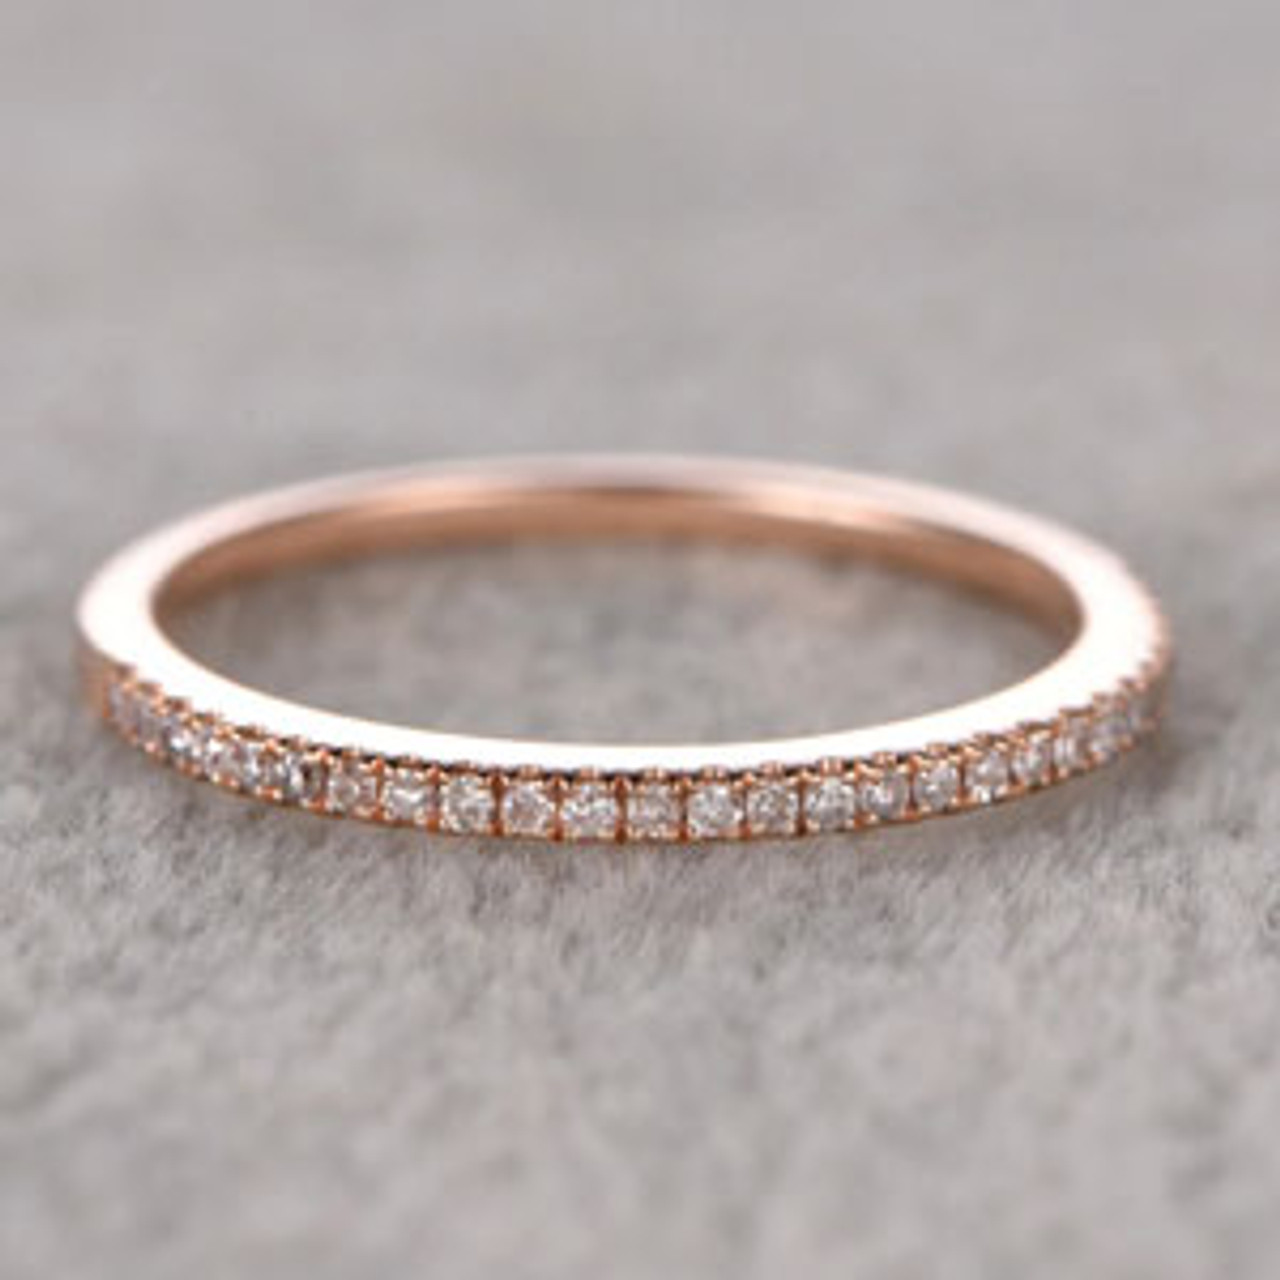 34aeaa47f5f70 Diamond Wedding Rings For Her 14k Rose Gold Thin Pave Half Eternity Band  Stacked Ring